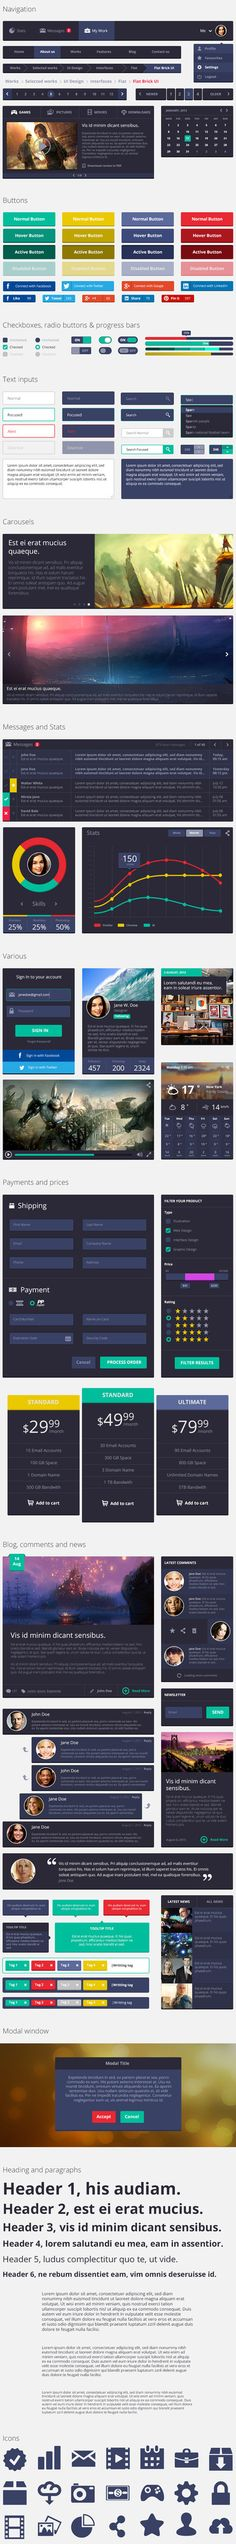 Here you go designer guys and girls. Today's freebie is a complete and very colorful flat ui kit PSD. This set has everything you could dr